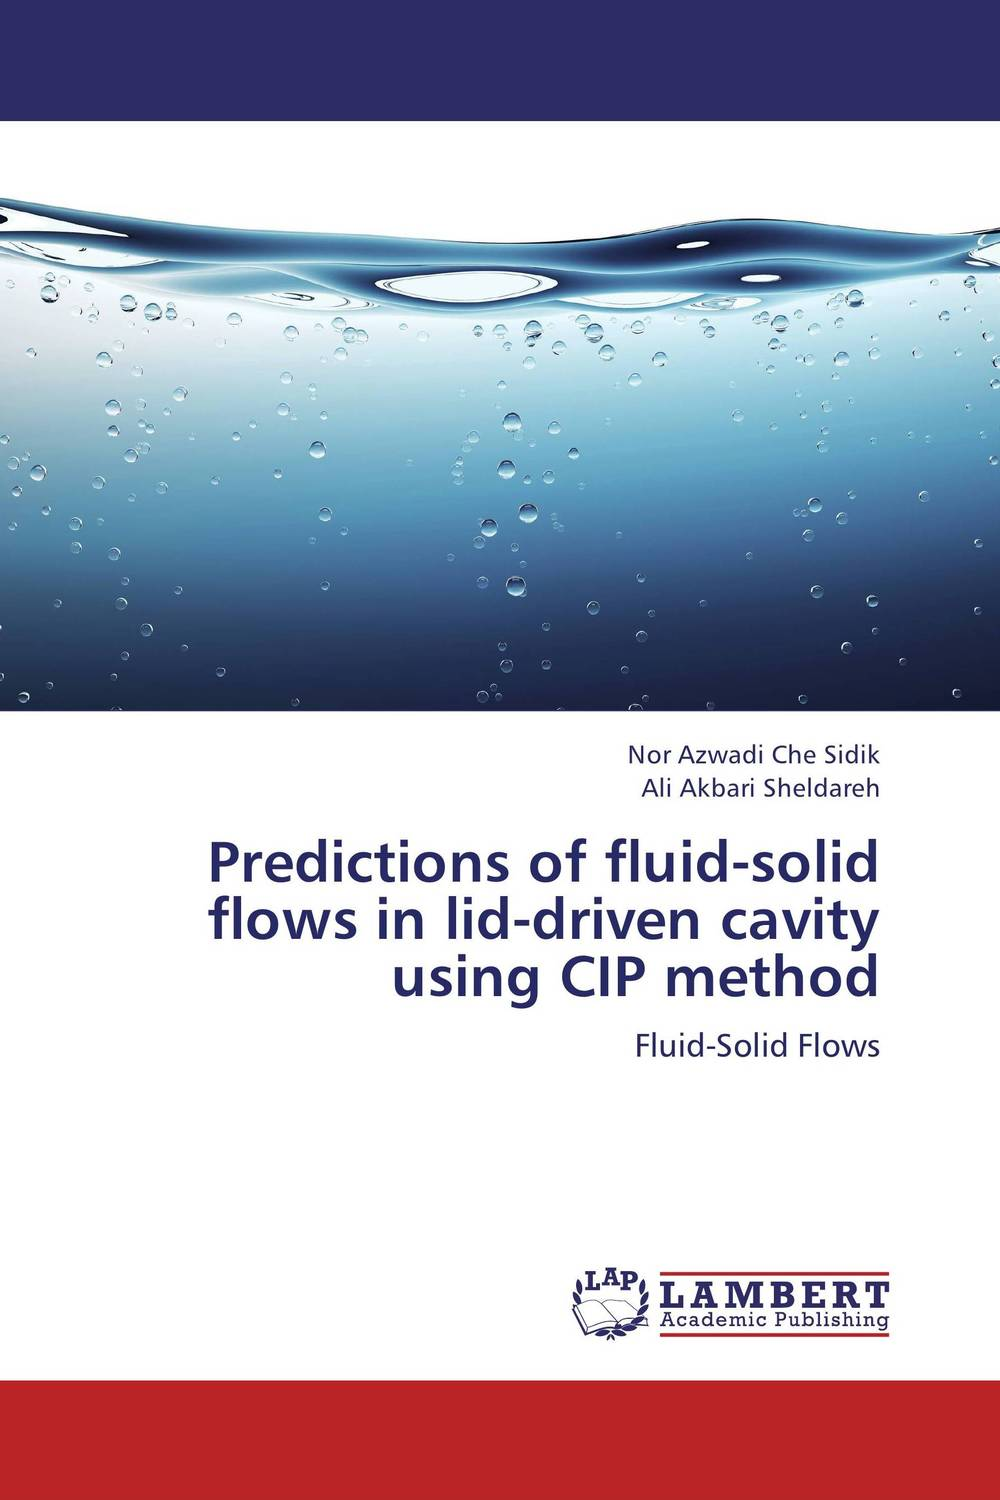 Predictions of fluid-solid flows in lid-driven cavity using CIP method driven to distraction